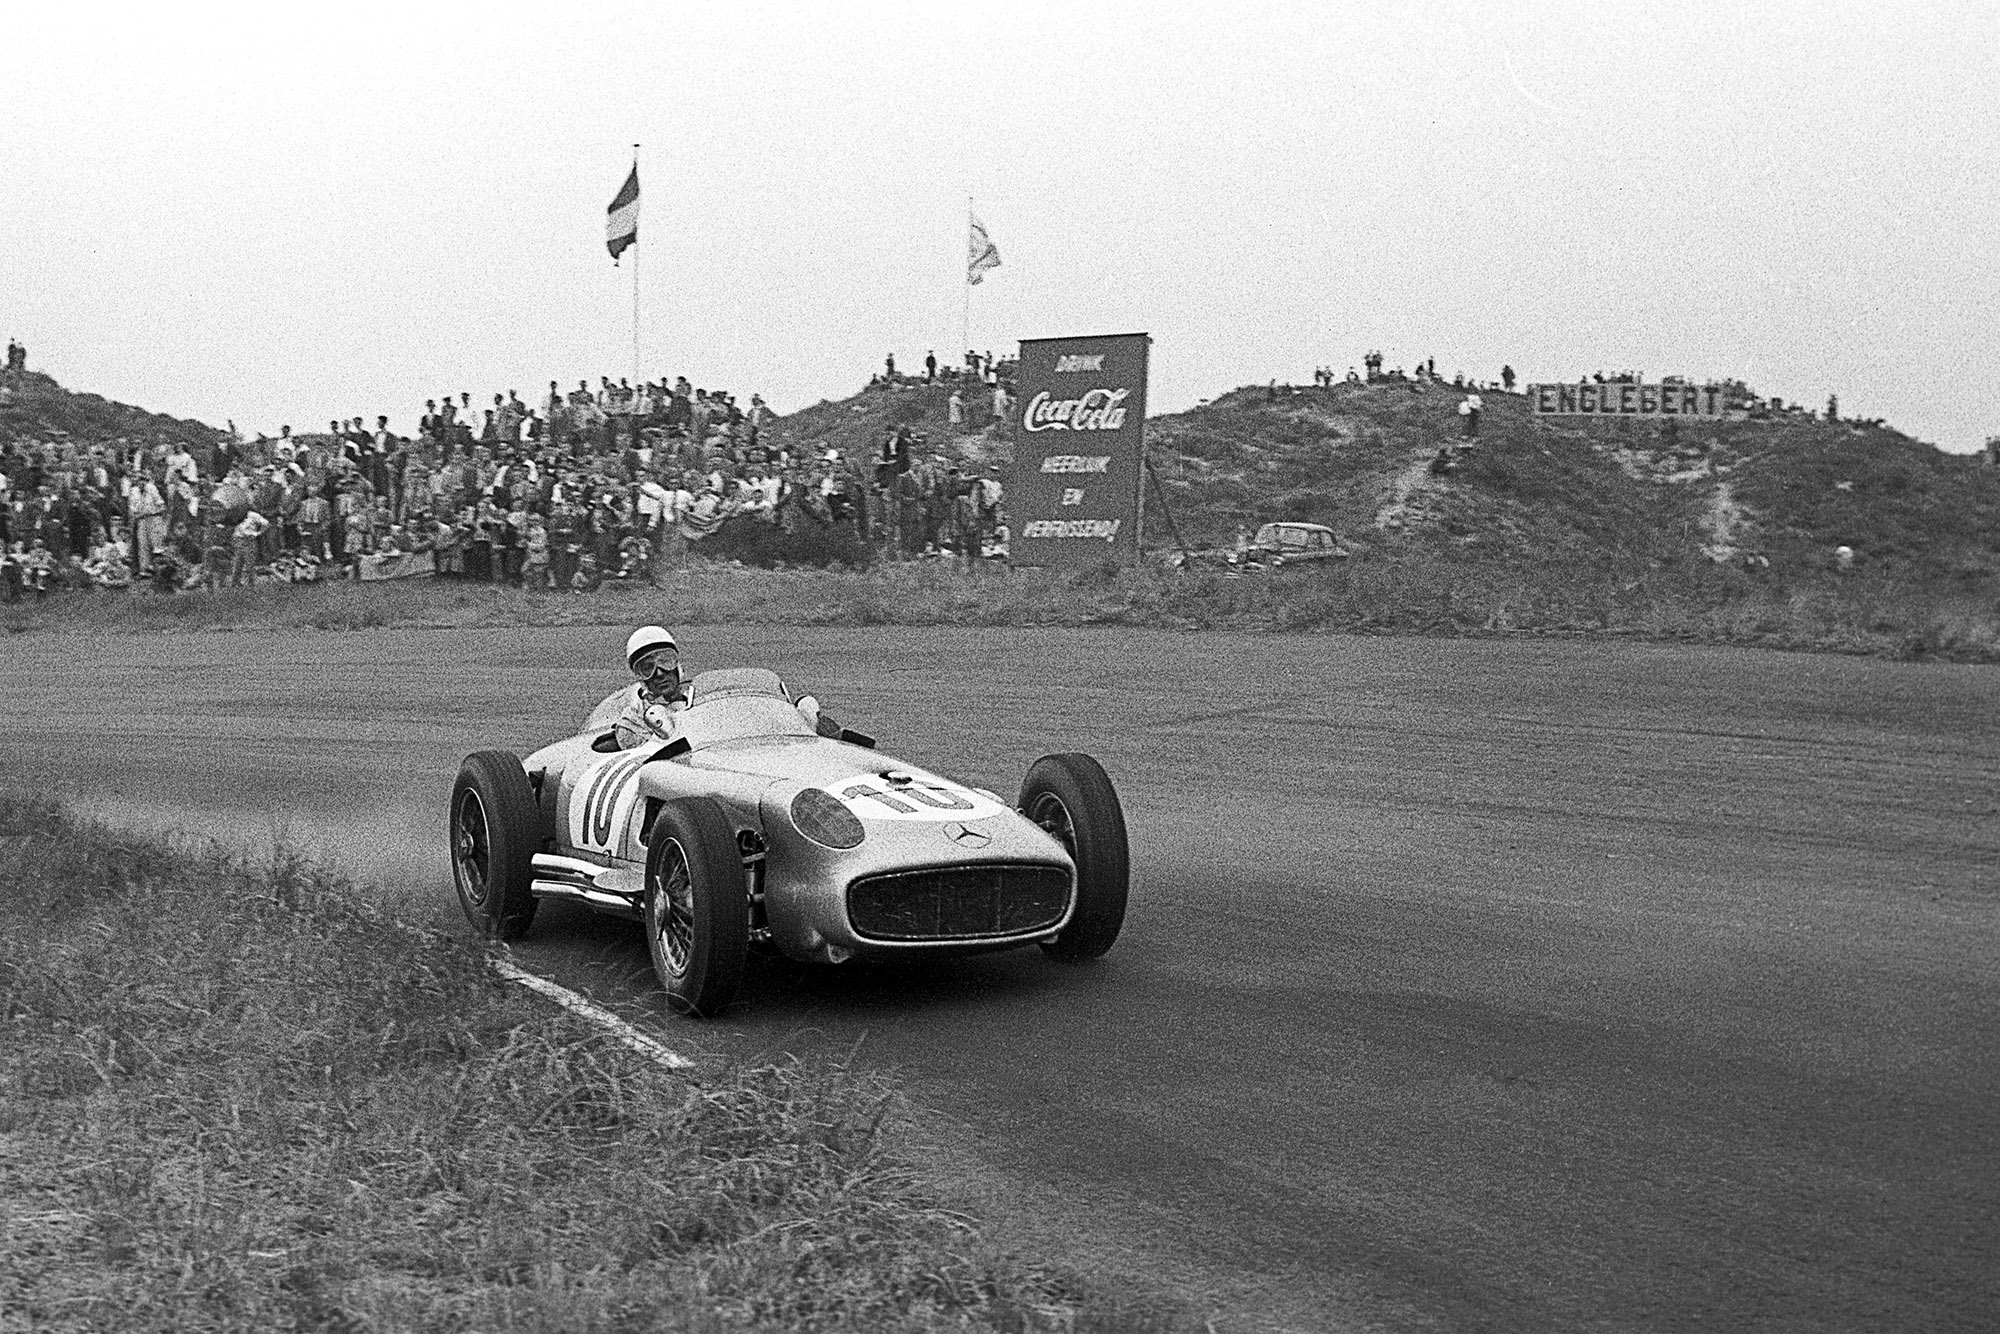 Stirling Moss during the 1955 Dutch Grand Prix